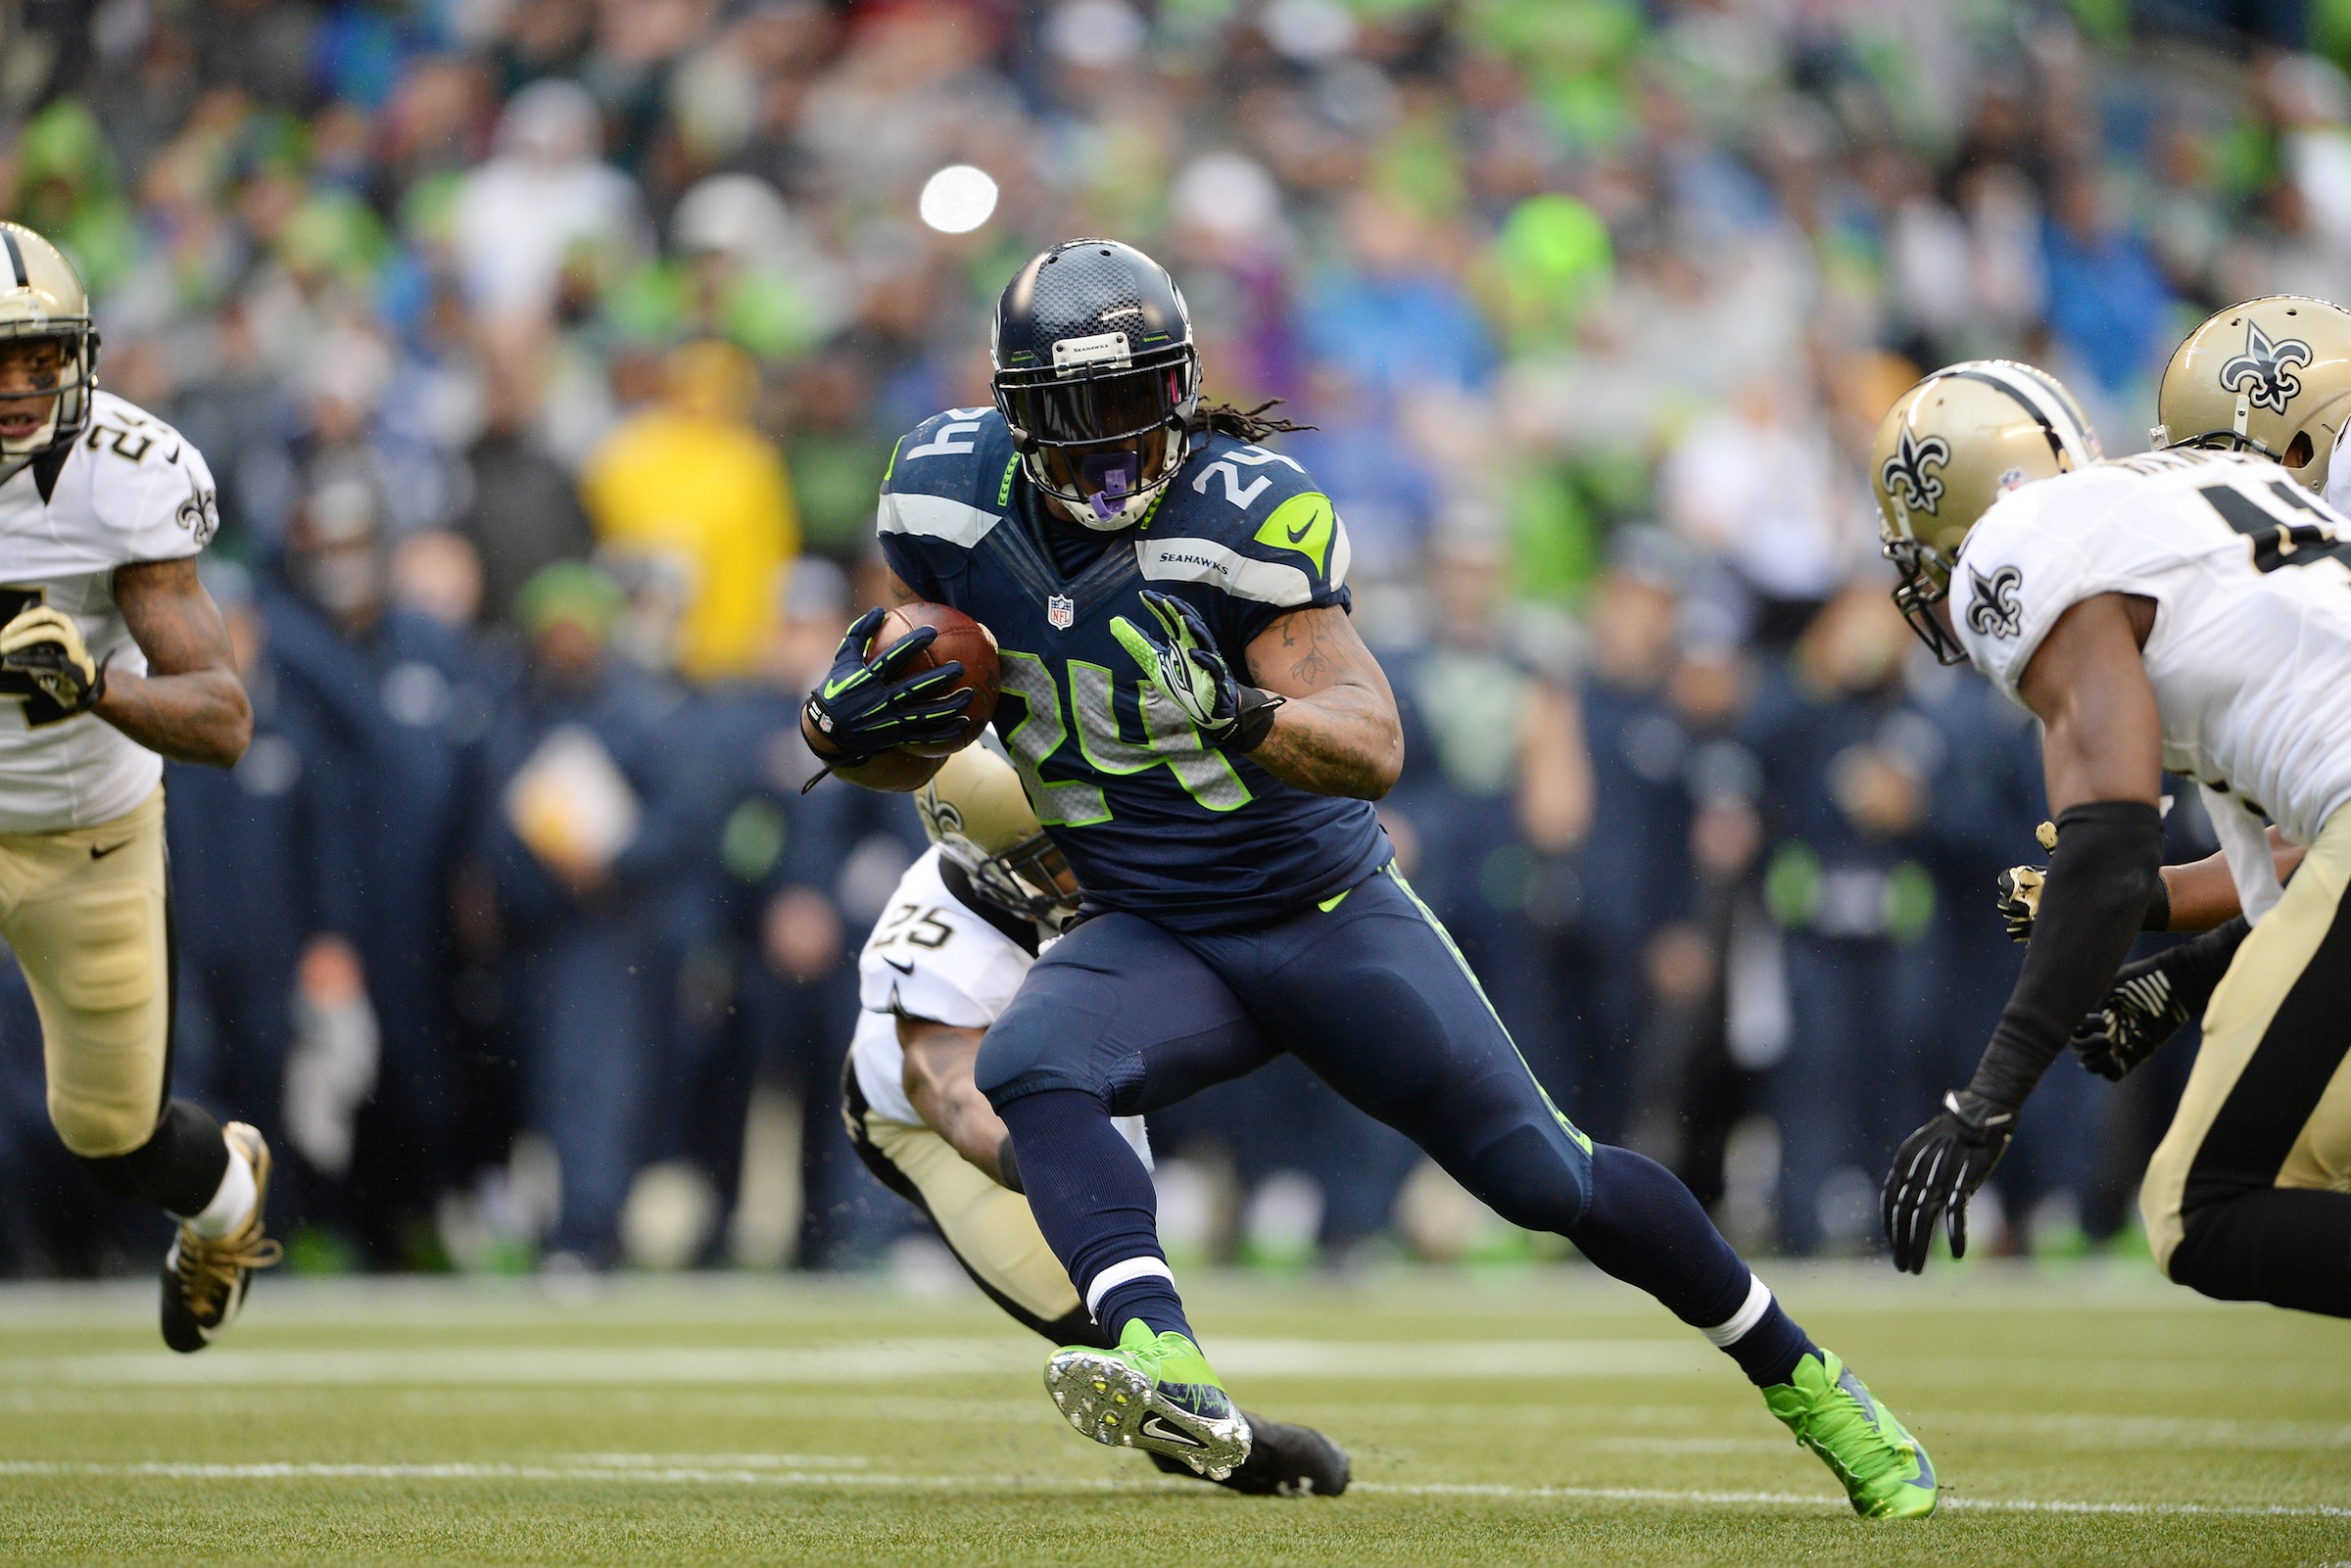 Seattle Seahawks running back Marshawn Lynch (24) heads for a 15-yard touchdown run during an NFC Divisional Playoff game against the New Orleans Saints on Saturday, Jan. 11, 2014, in Seattle. The Seahawks won the game, 23-15. (AP Photo/Greg Trott)